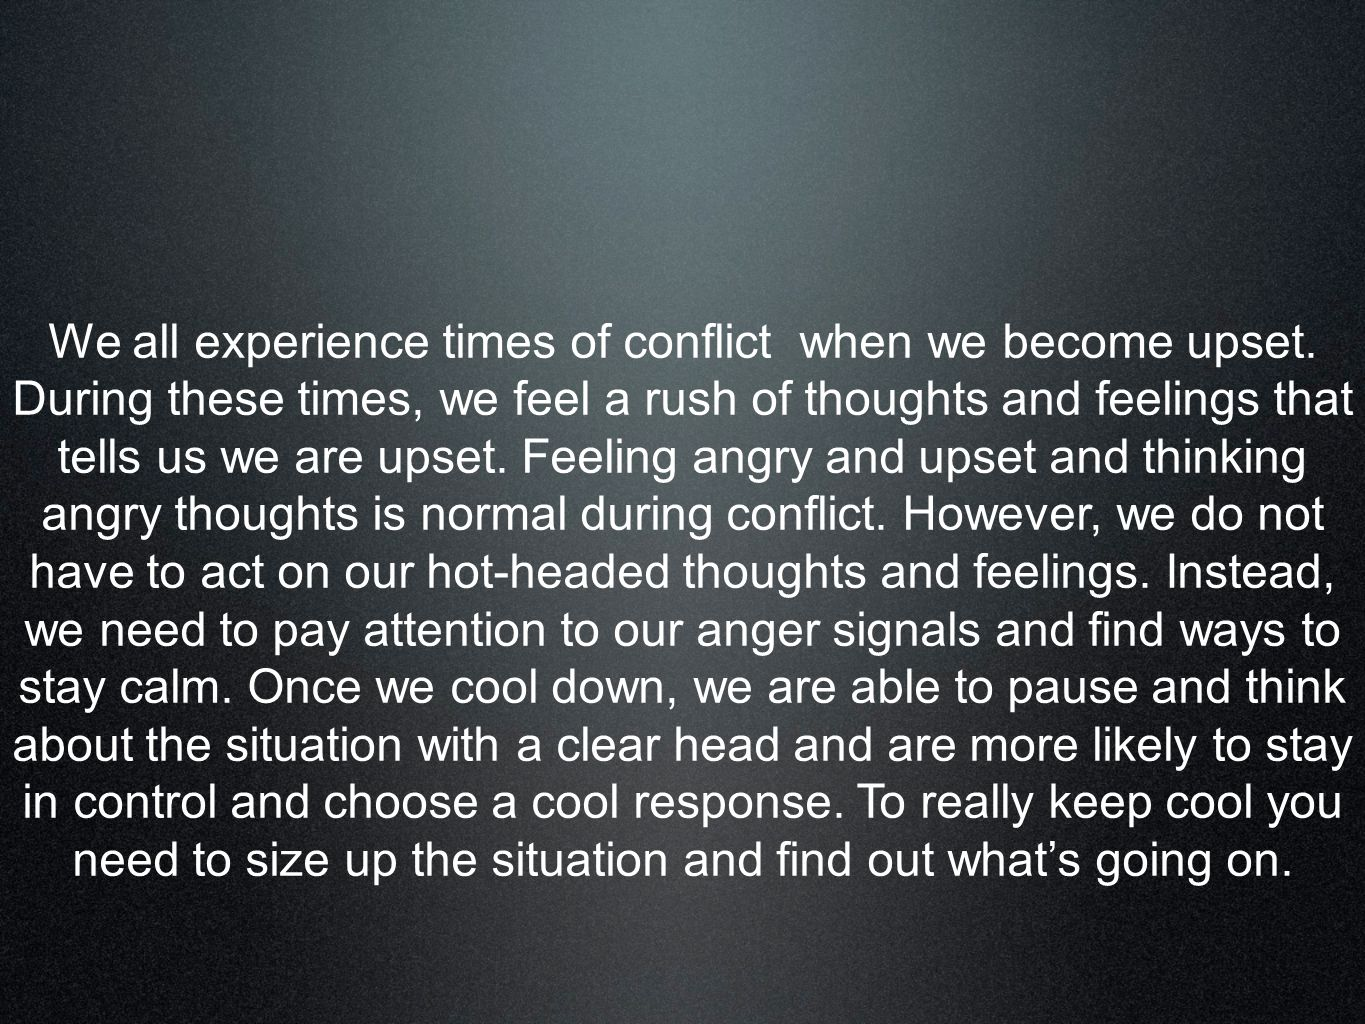 We all experience times of conflict when we become upset.